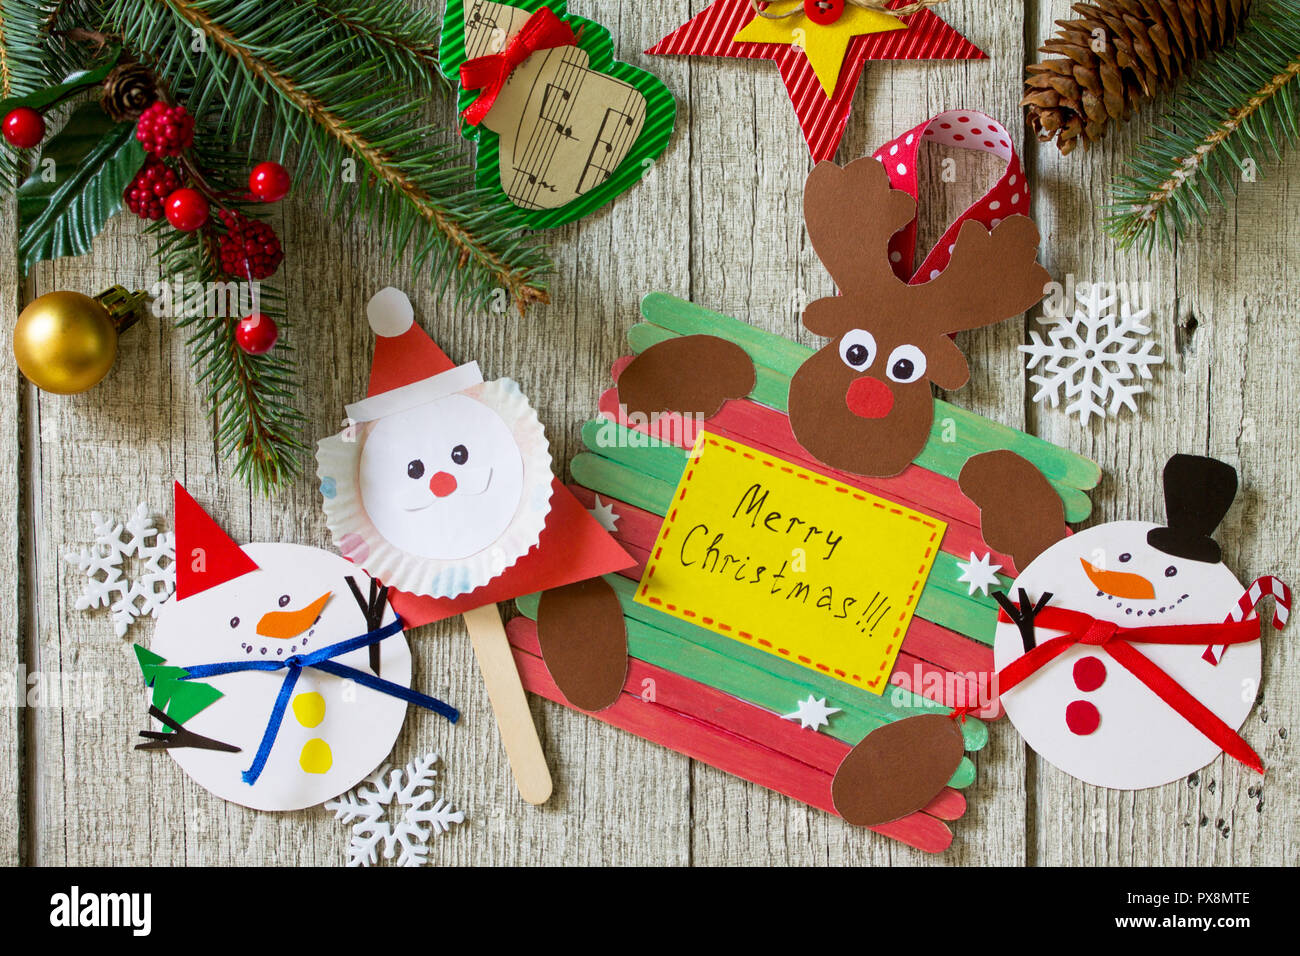 Christmas merry gift on wooden table - Santa, Reindeer and snowman ...